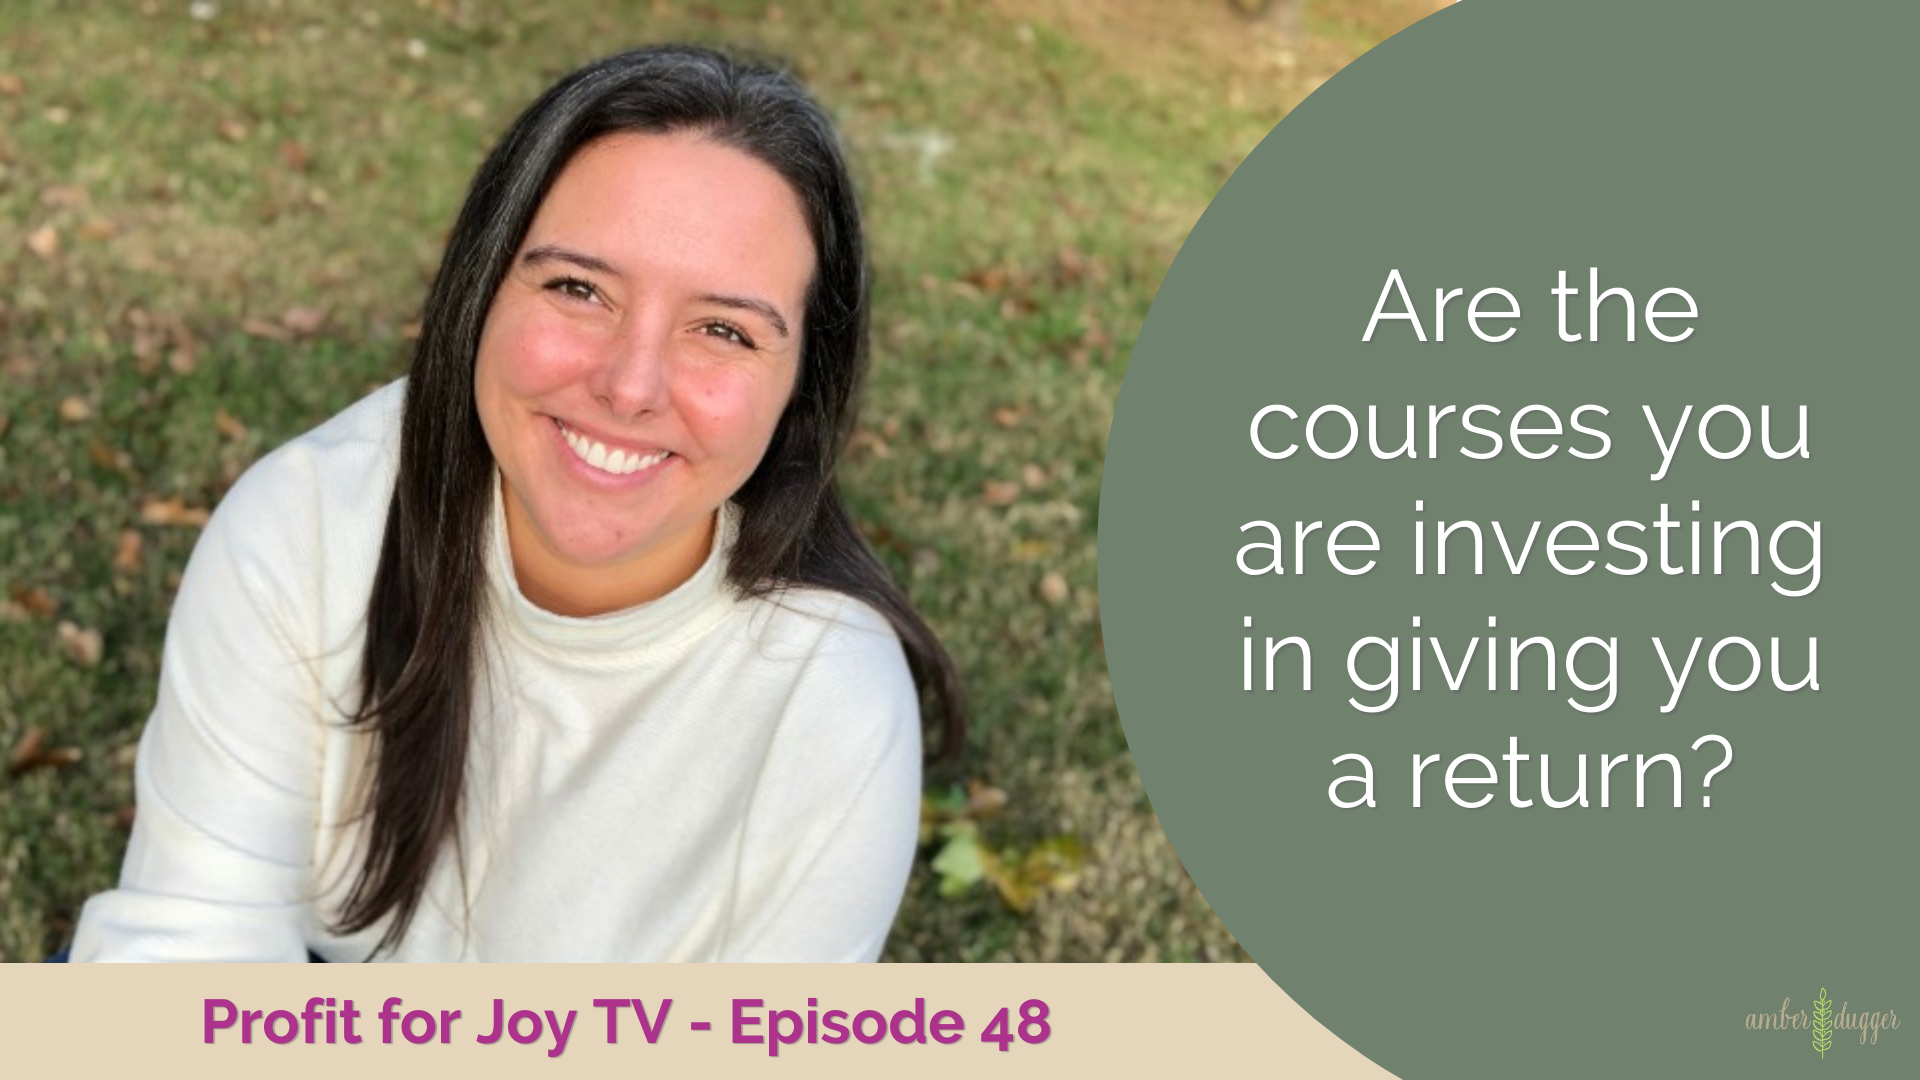 Are the courses and programs you are investing in giving you a return?